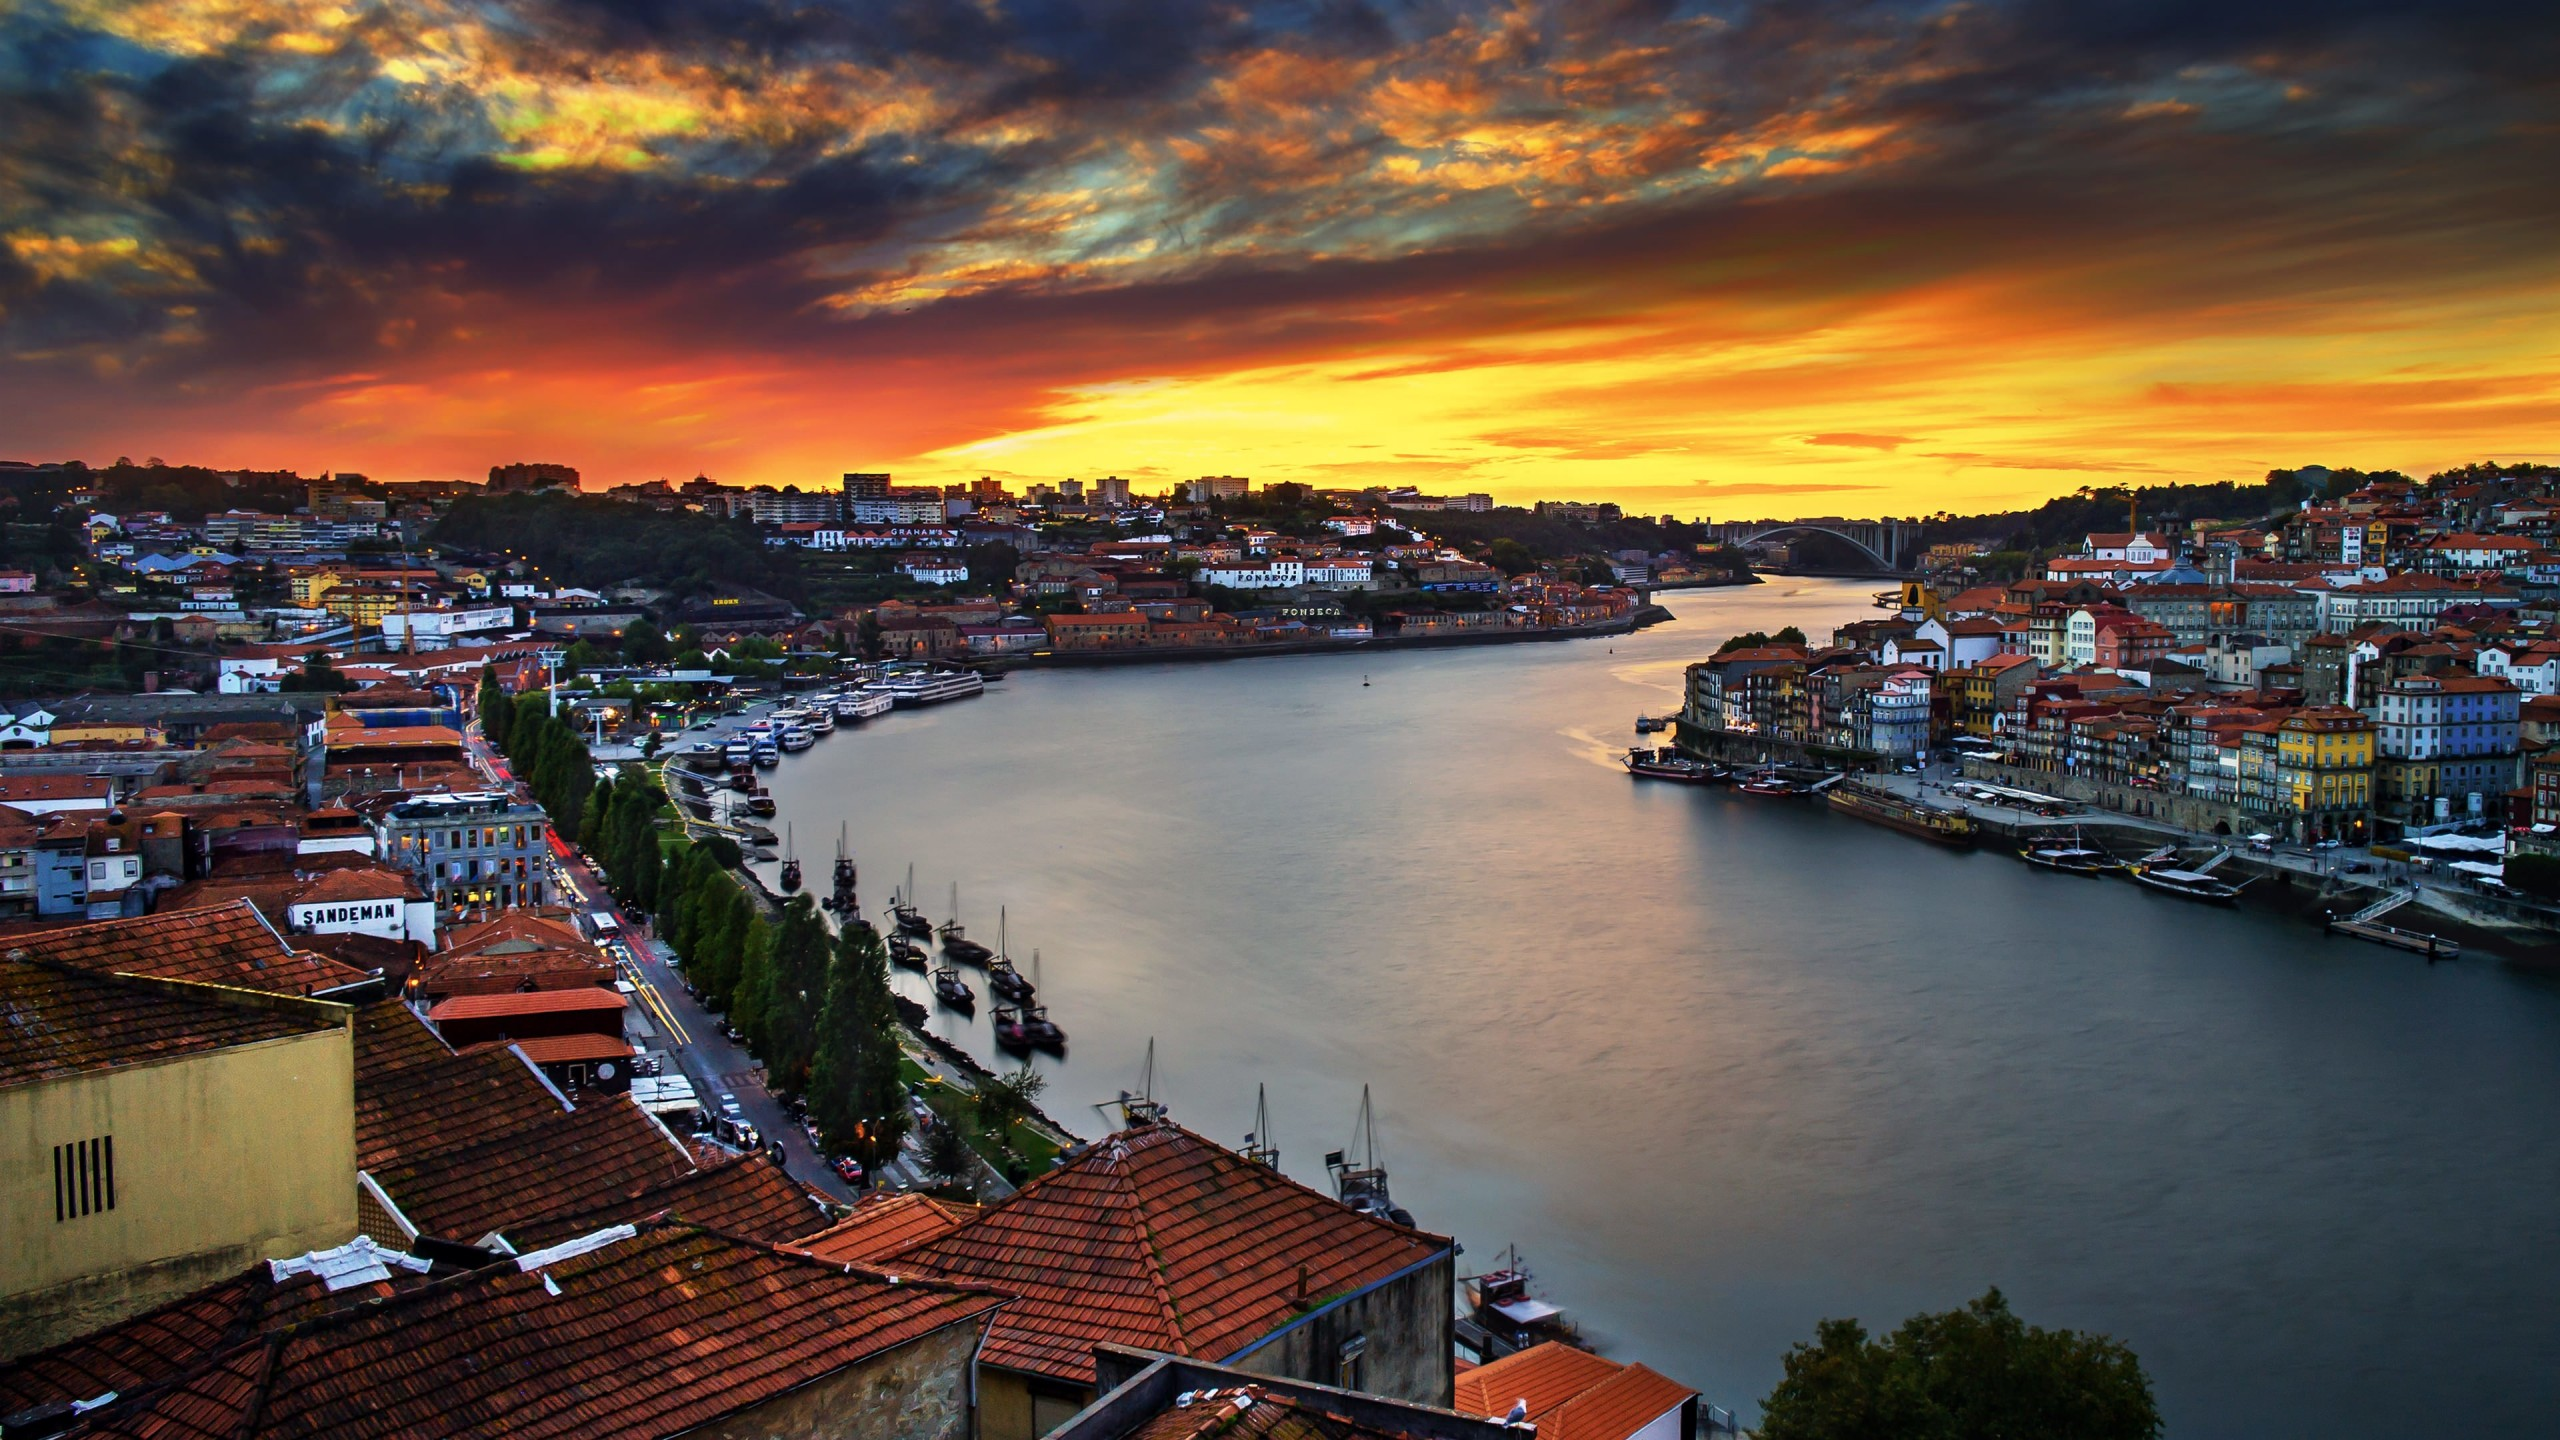 Enchanting Porto Wallpaper for Desktop 2560x1440